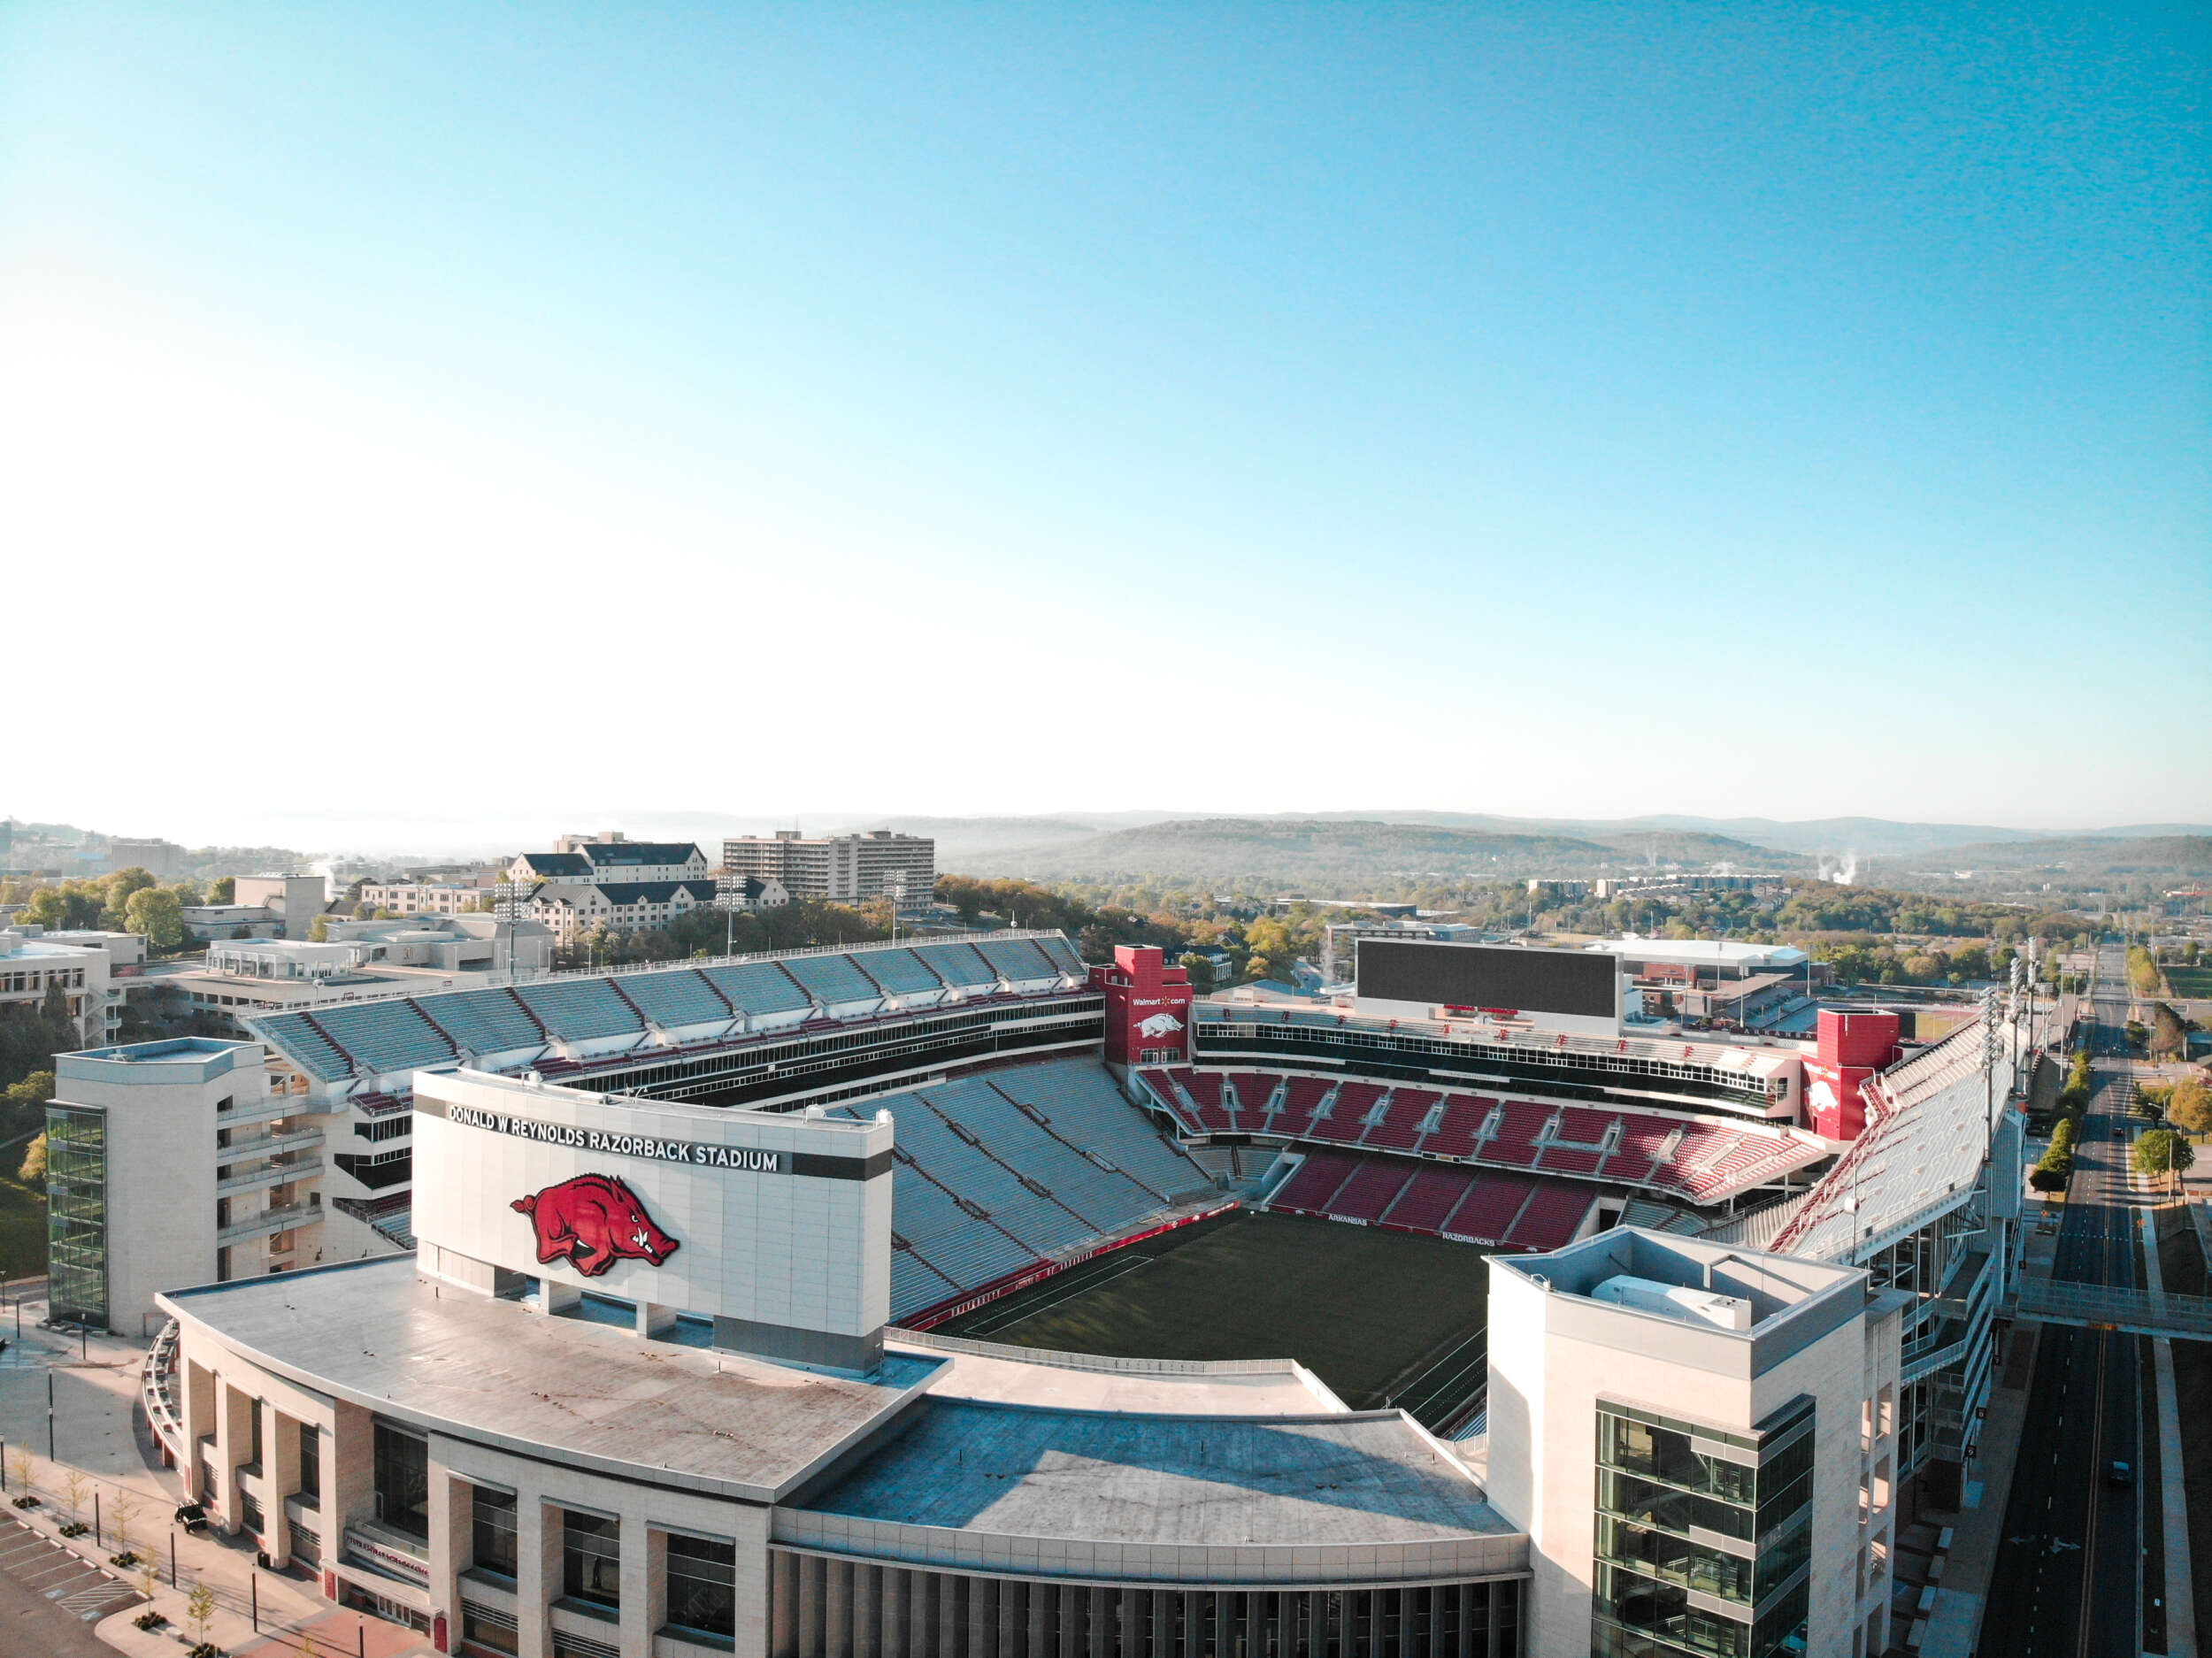 Things Razorback Football Guests Should Know to Enhance their 2020 Gameday Experience